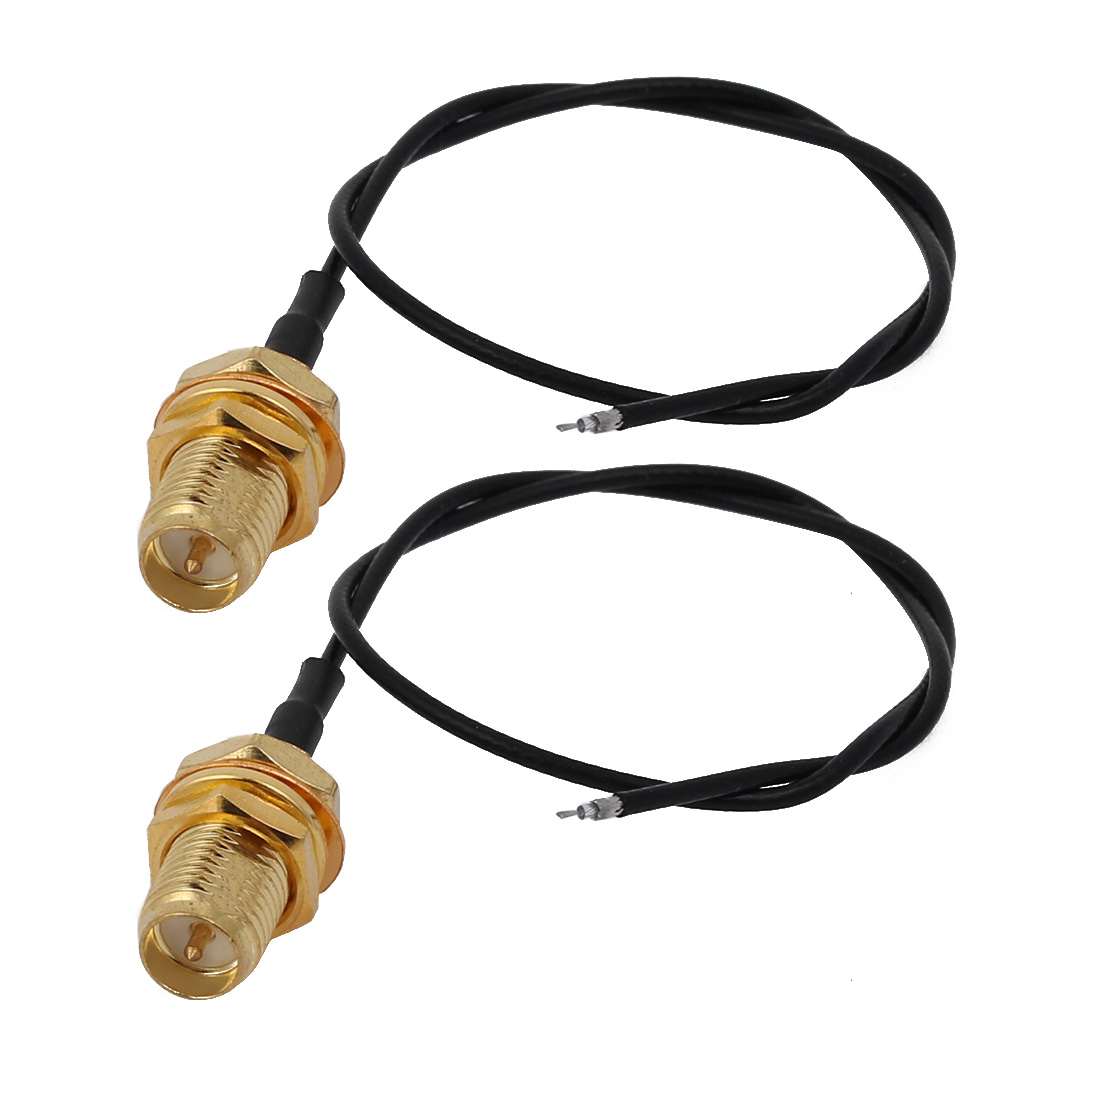 2pcs RF1.13 Soldering Wire SMA Male Connector Antenna WiFi Pigtail Cable 20cm Long